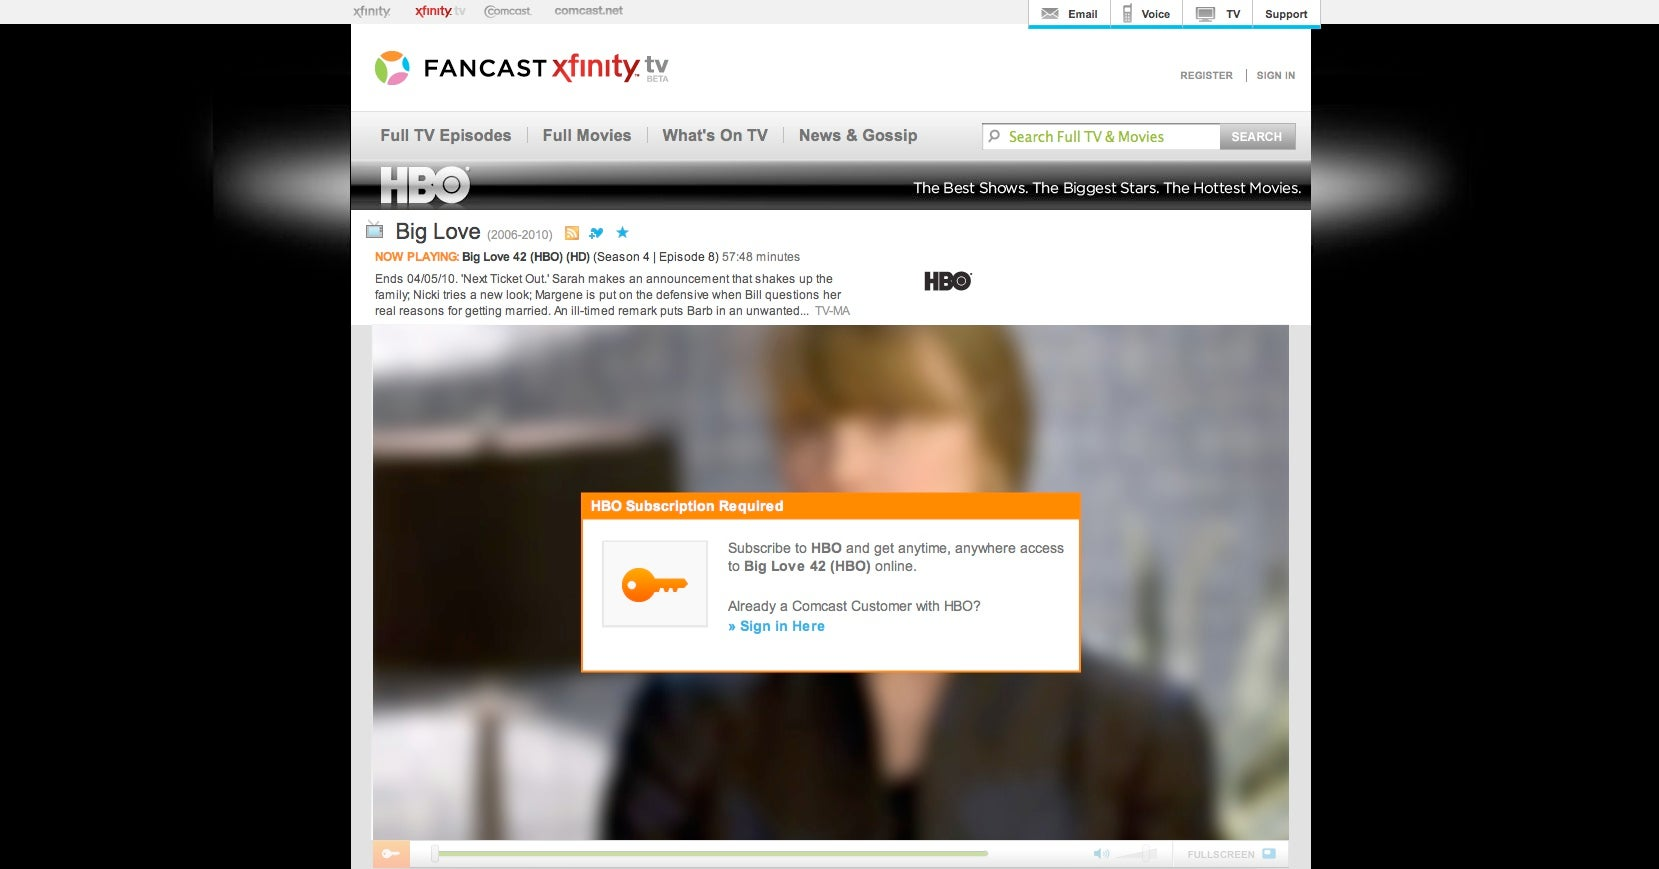 Comcast Fancast Xfinity TV Hasn't Lived Up to Expectations | TechHive